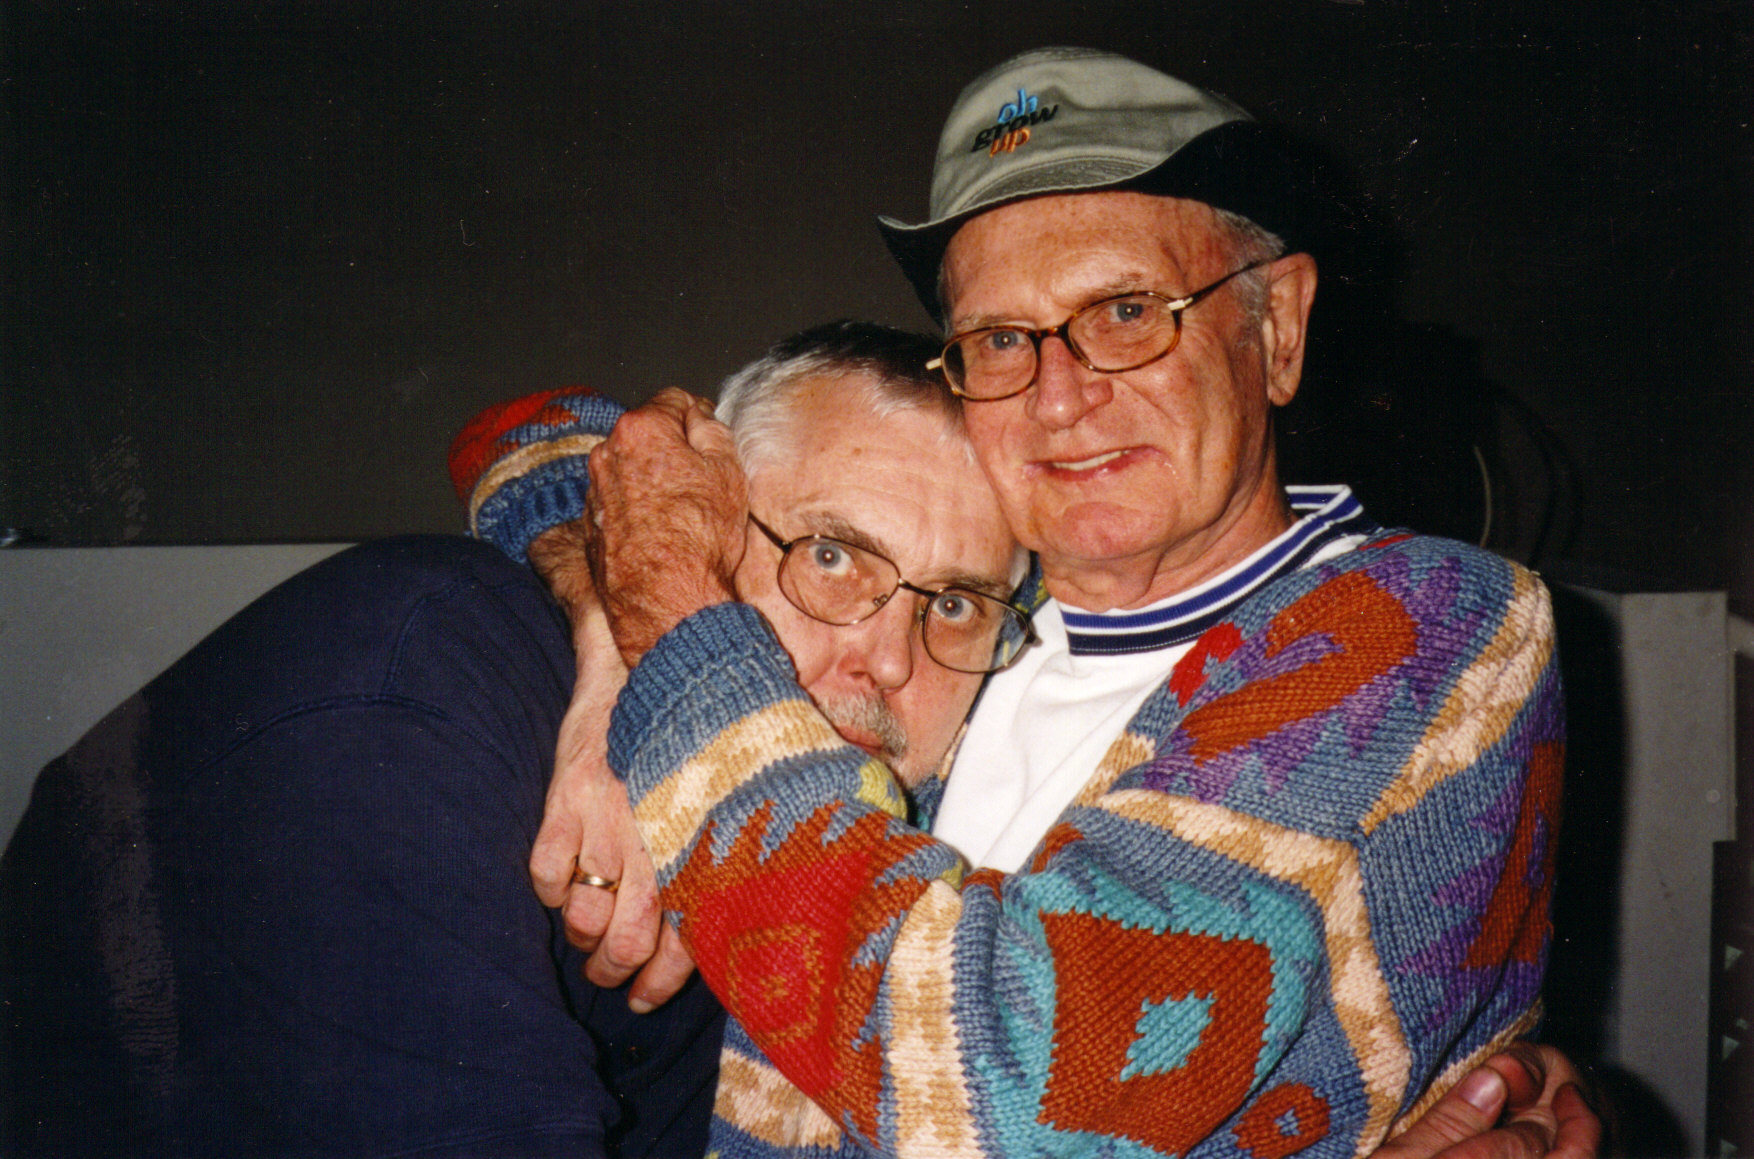 Jim Brochu, Charles nelson Reilly